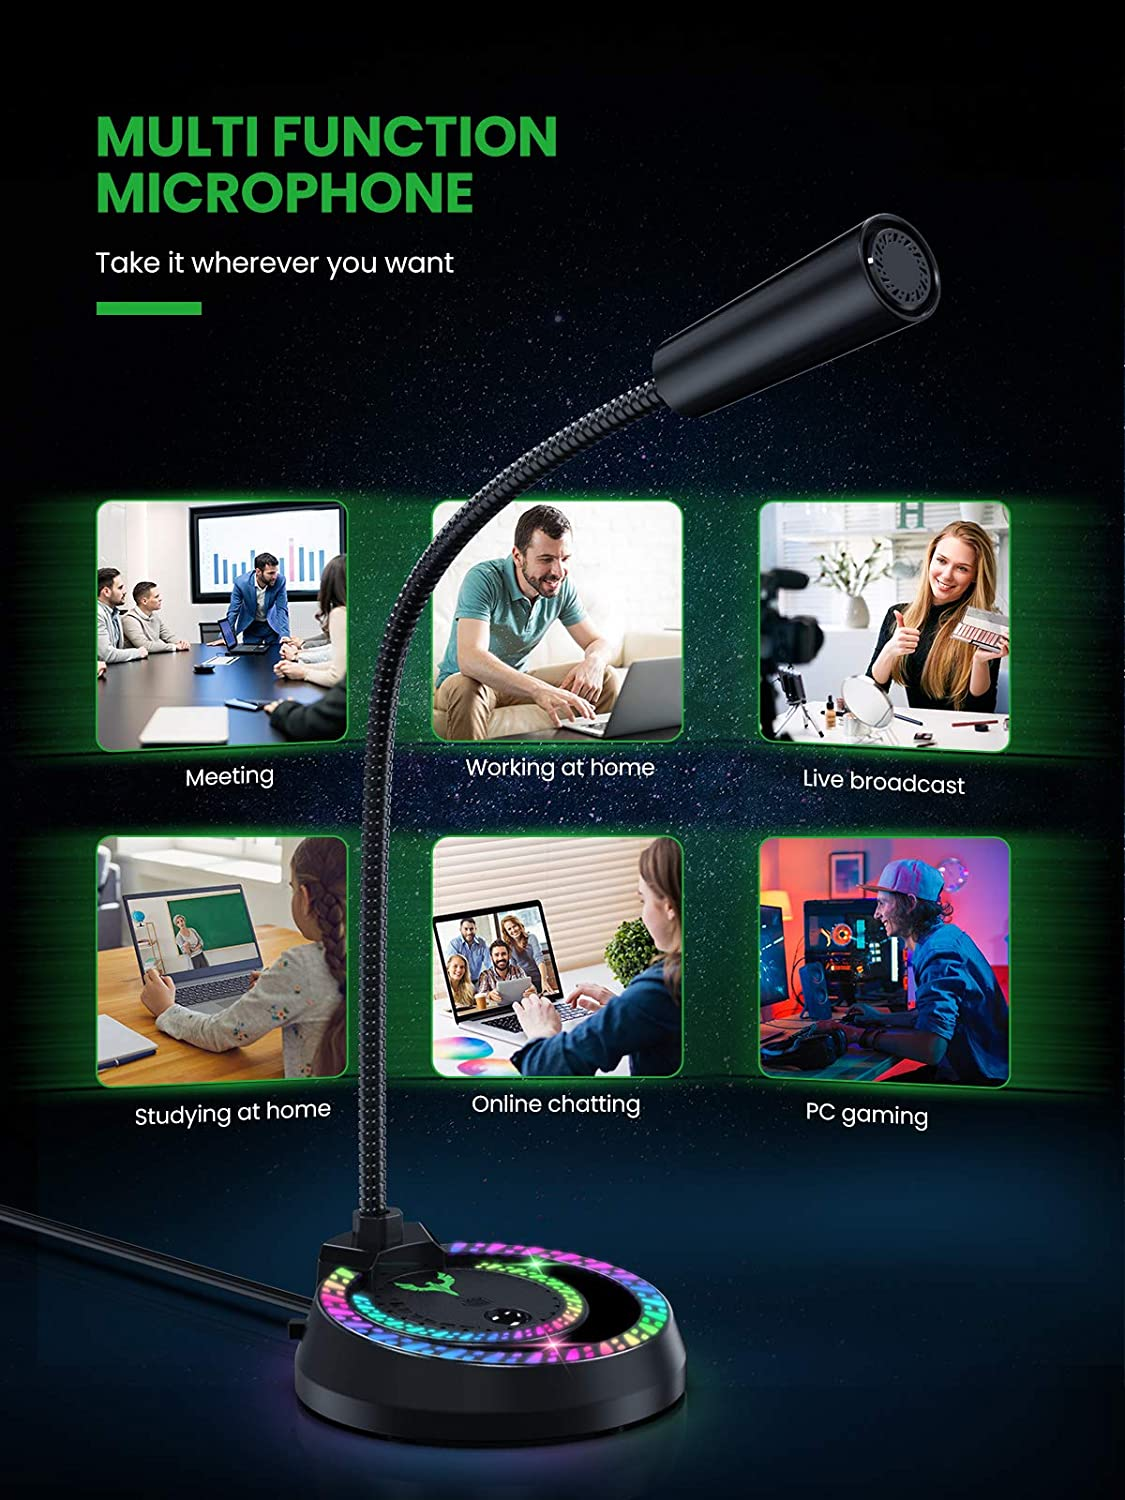 USB LED Streaming Microphone with Noise Canceling Sponge Blade Hawks USB Microphone 360/° Omnidirectional Condenser RGB Mic for Computer Laptop Mac Gamers PC Gaming Microphone